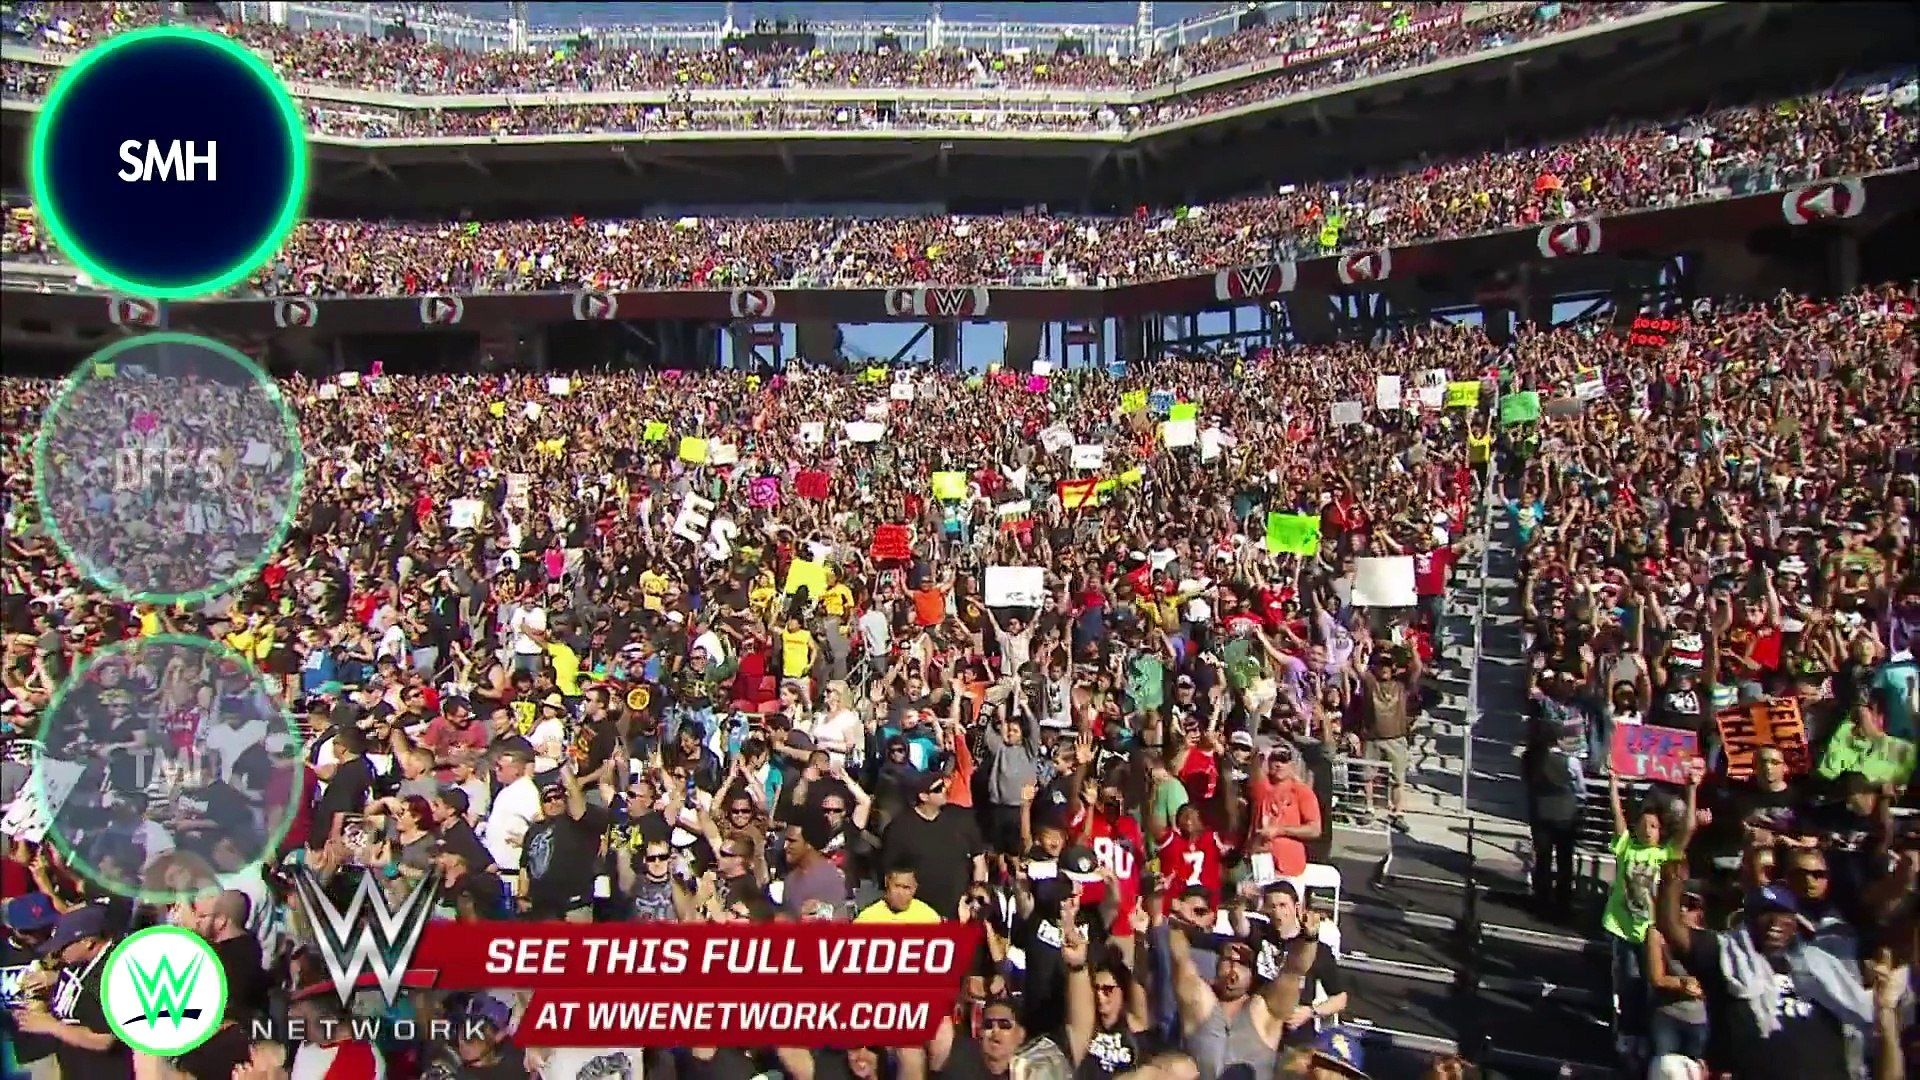 WWE Network  Seth Rollins makes The WWE List for stealing a win at WrestleMania 31